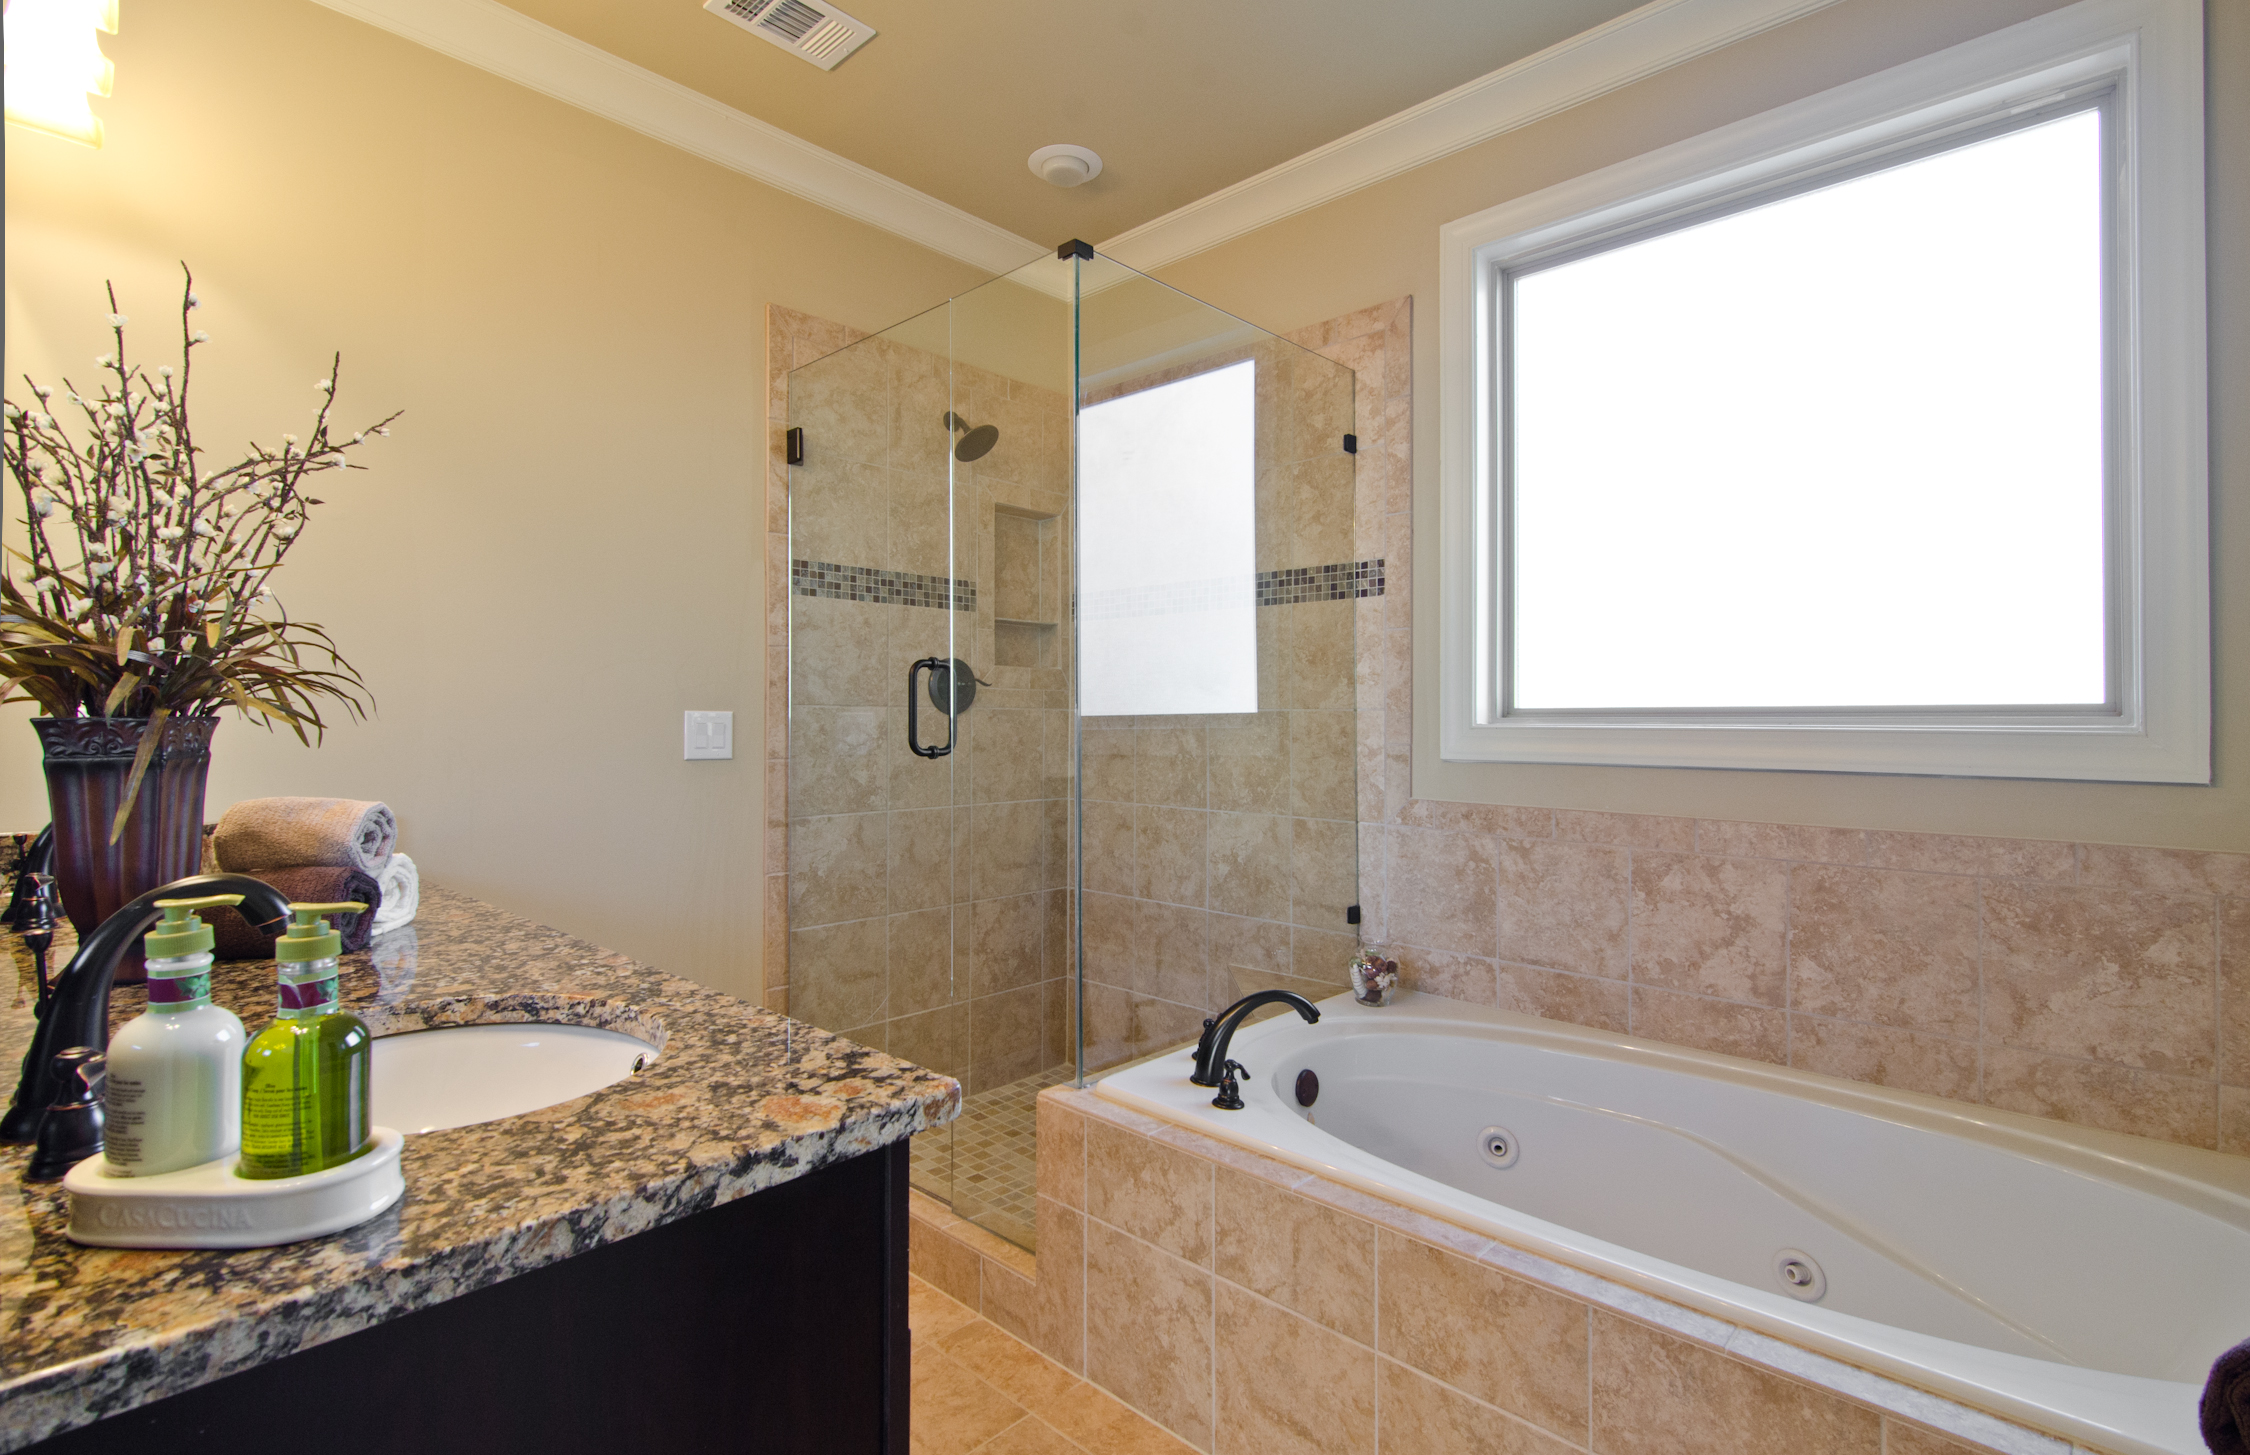 How To Remodel A Small Bathroom Large And Beautiful Photos - How much does it cost to redo a bathroom for small bathroom ideas